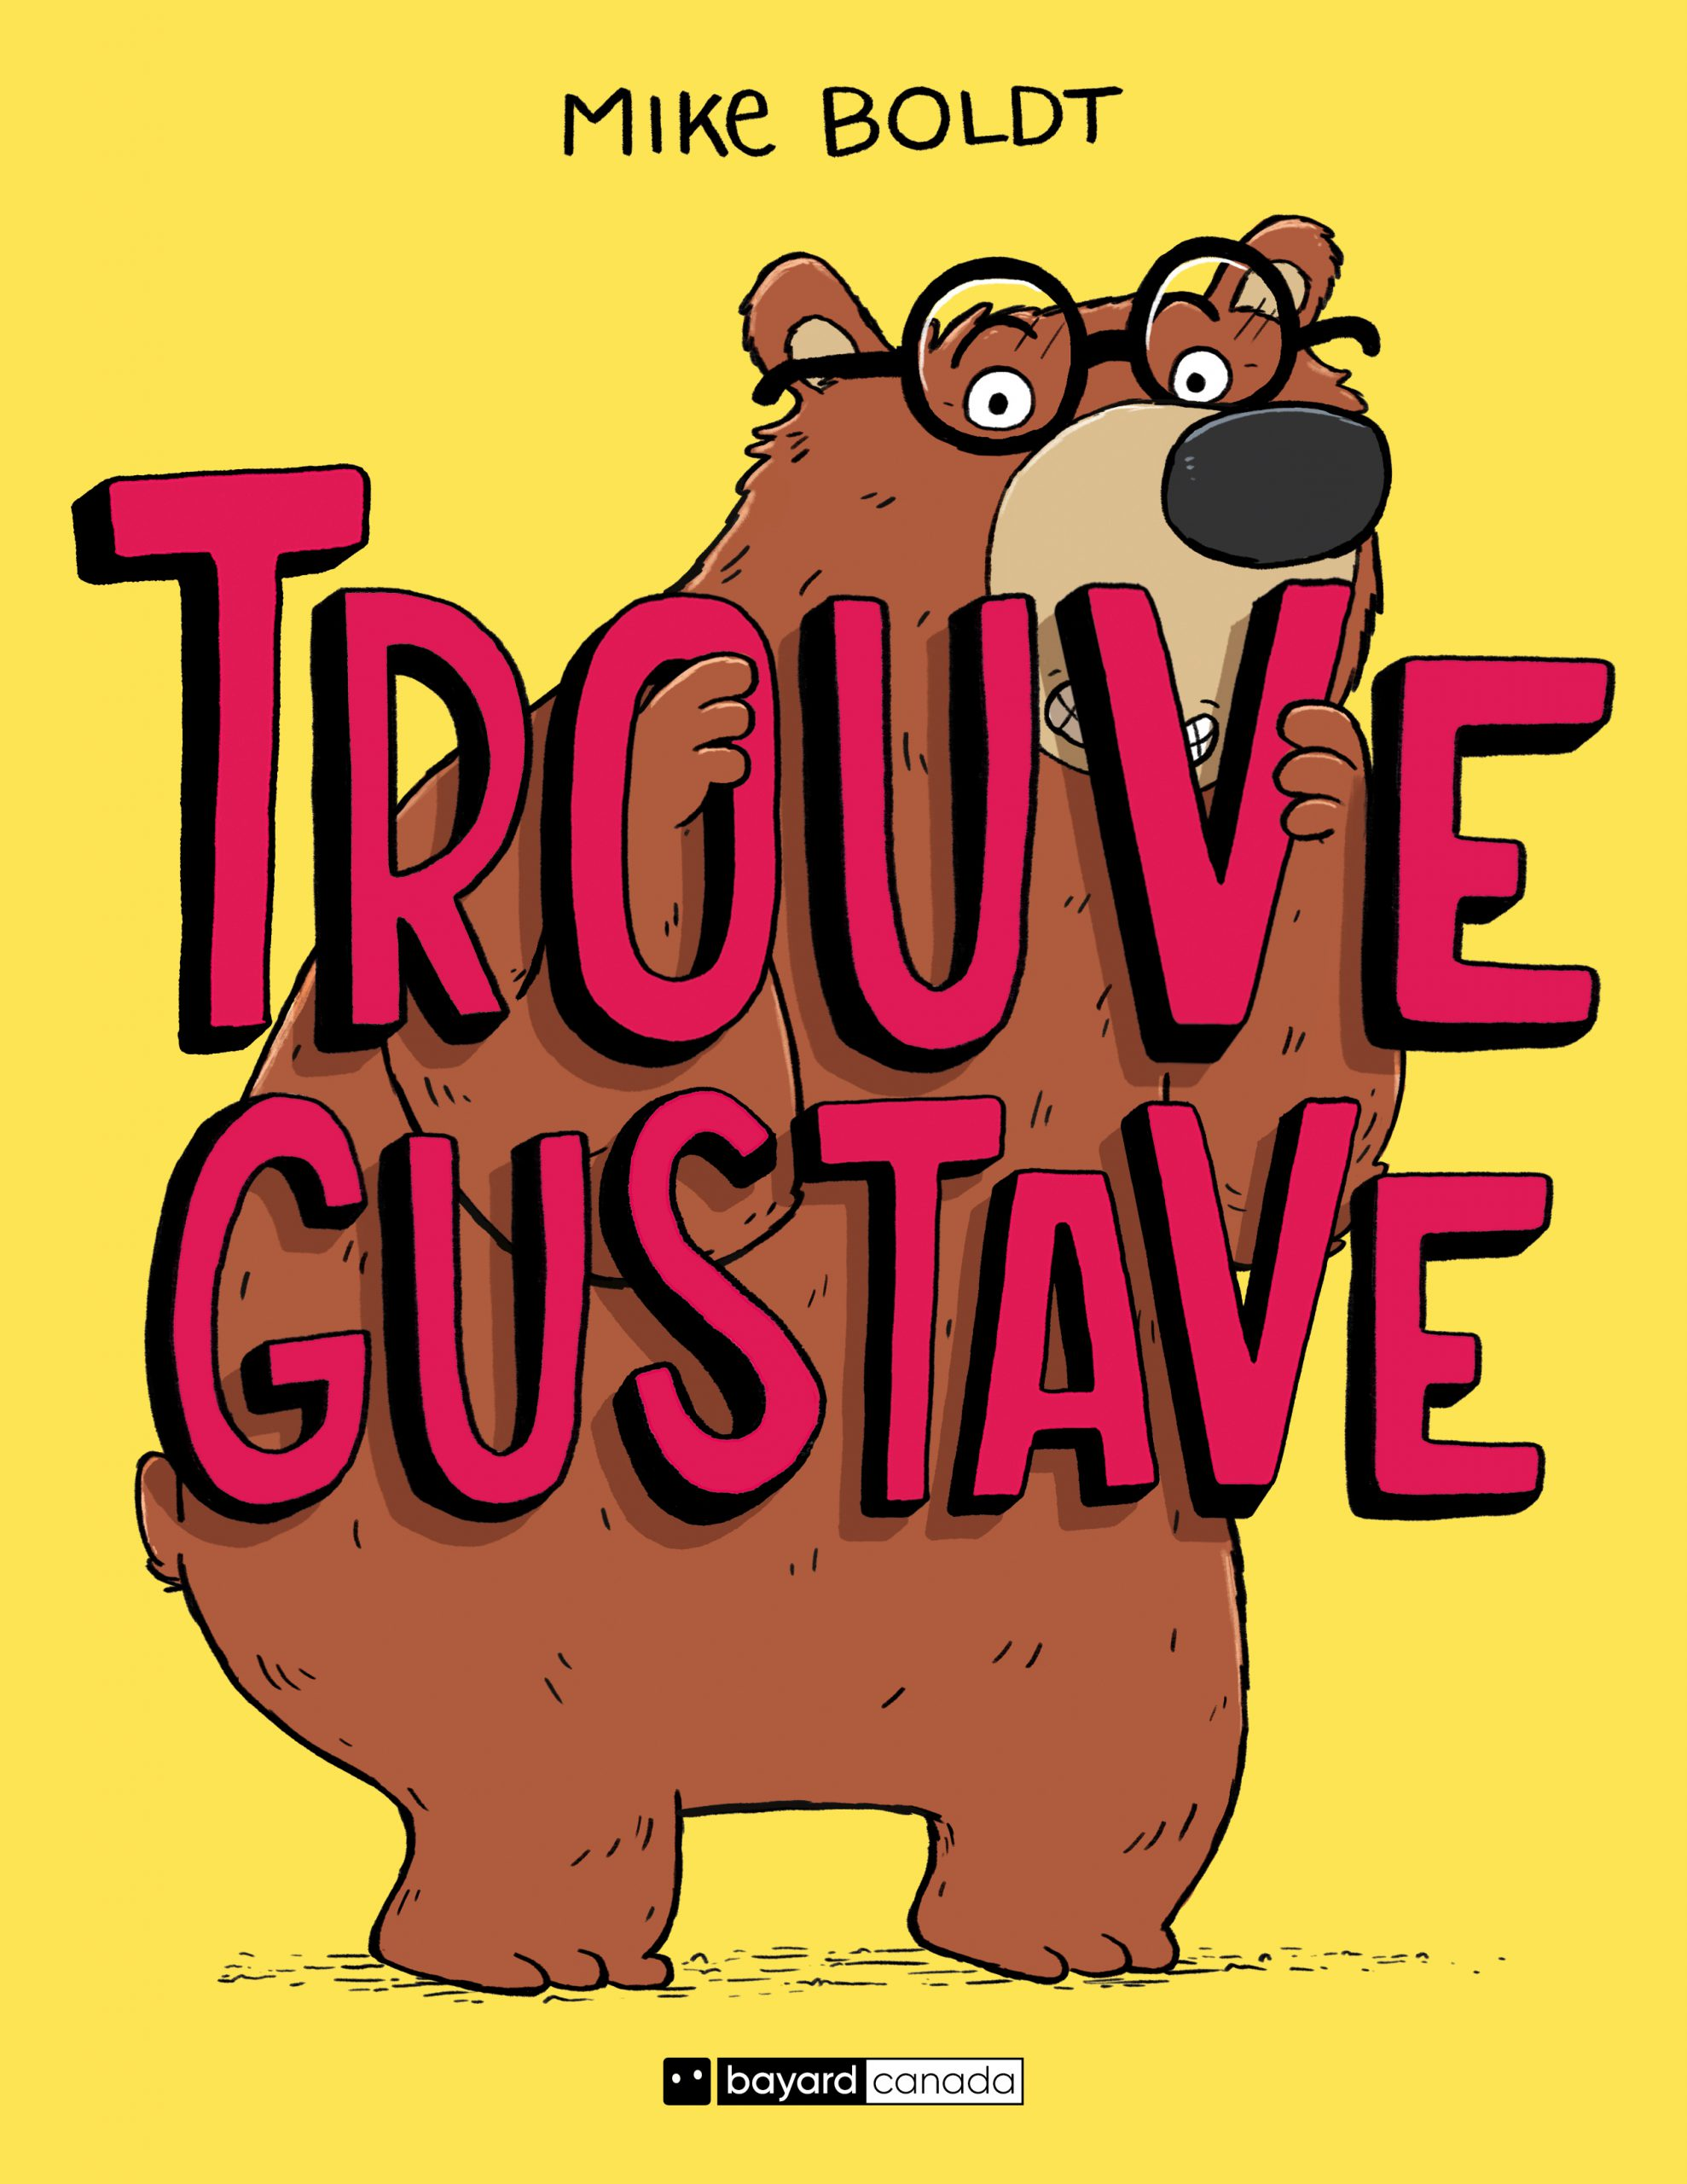 Trouve Gustave